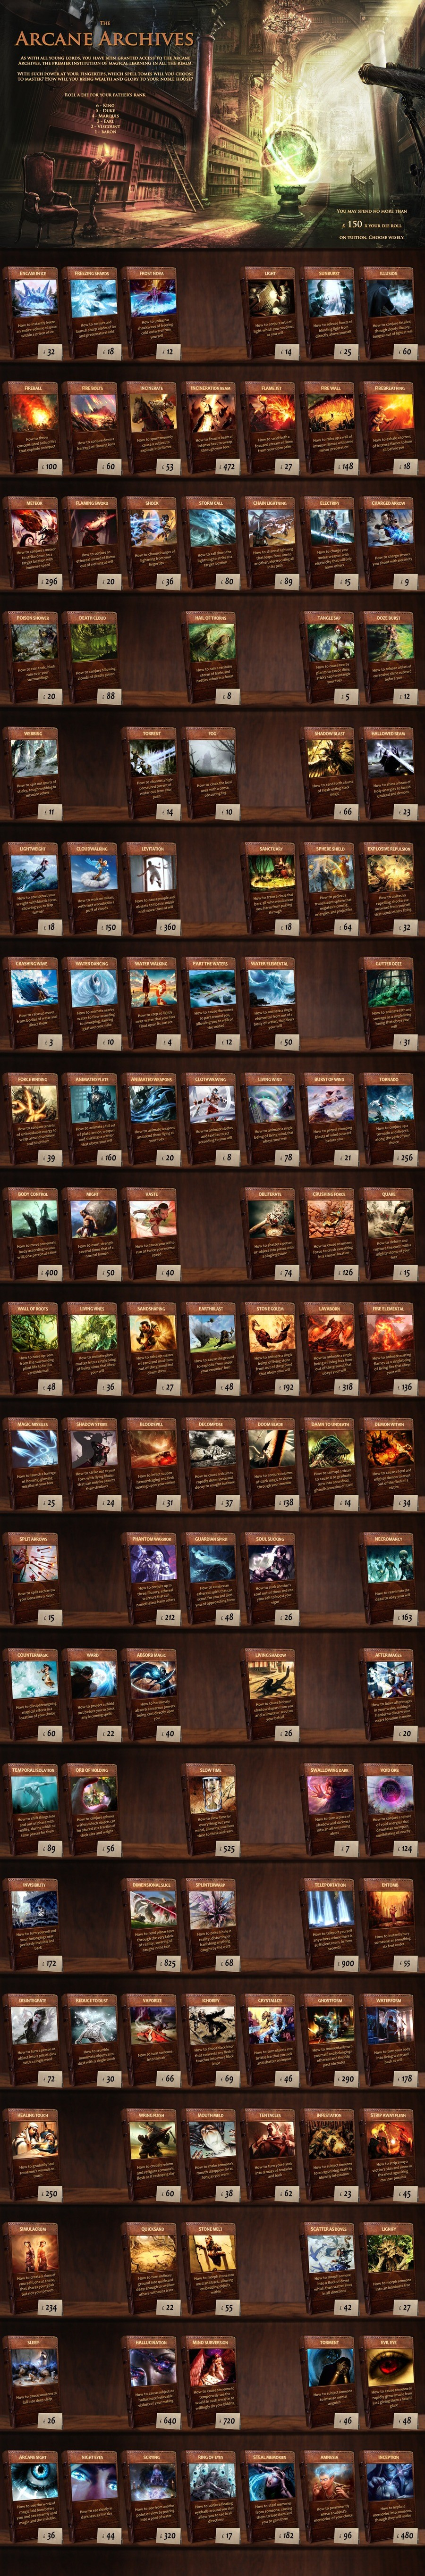 The Arcane Archives CYOA. If you can't see it, click the image or right click and select open image in a new tab... I rolled a six, became son of a king, though this was going to be super easy, first couple hundred books were like 25 at most, then you go on and the start gett